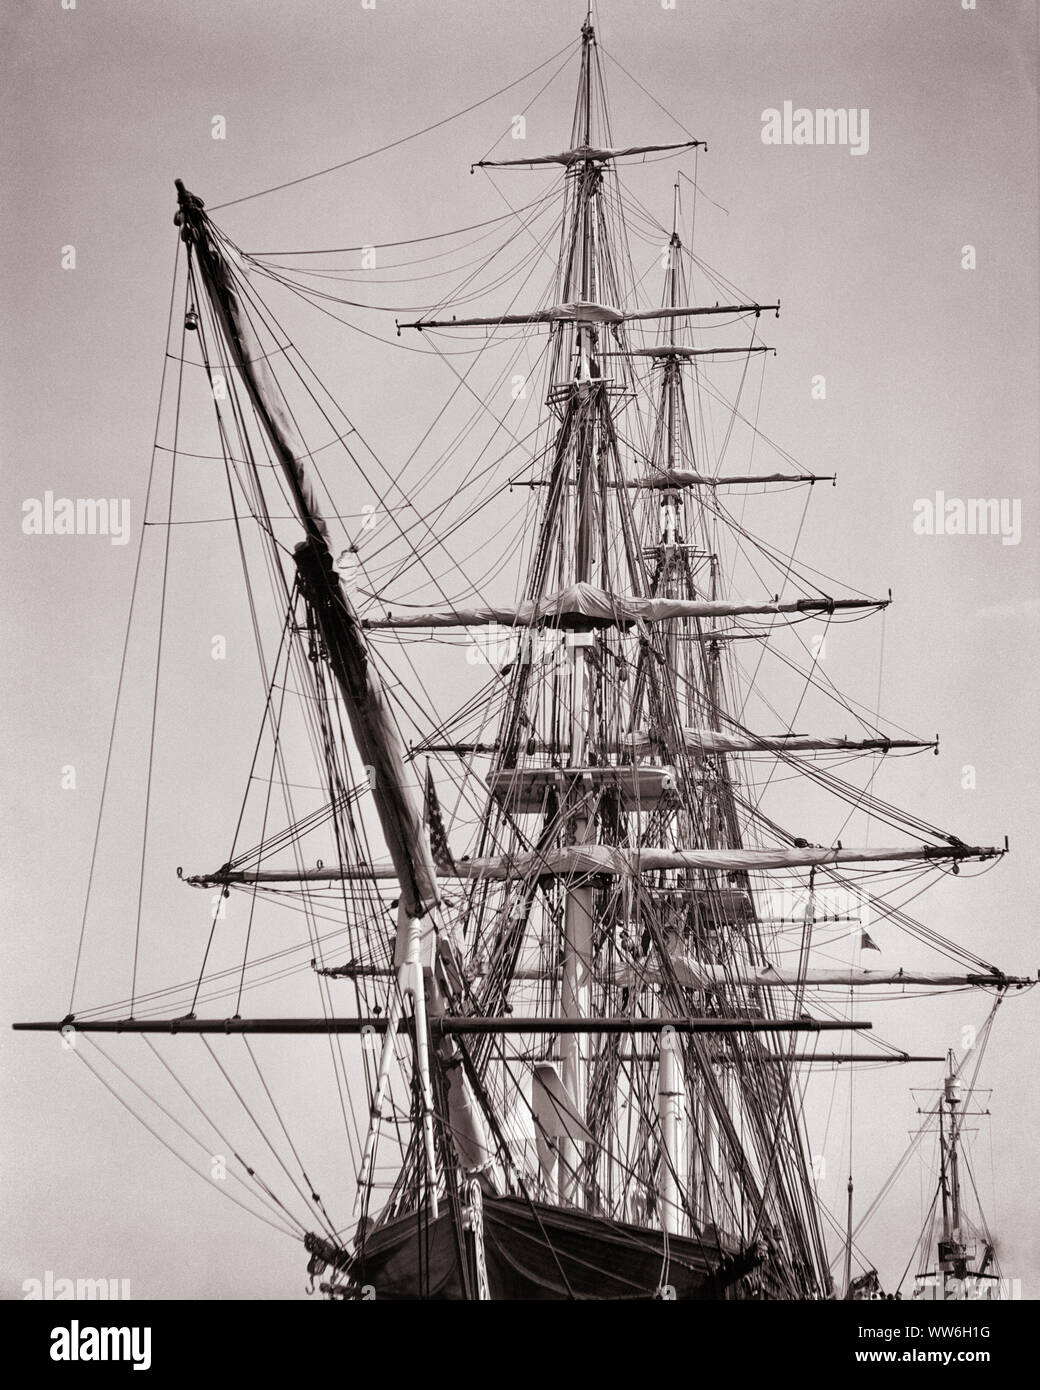 1930s SHIP-RIGGED SAILING SHIP WITH THREE MASTS AND A BOW SPRIT - s3796 HAR001 HARS VESSEL Stock Photo